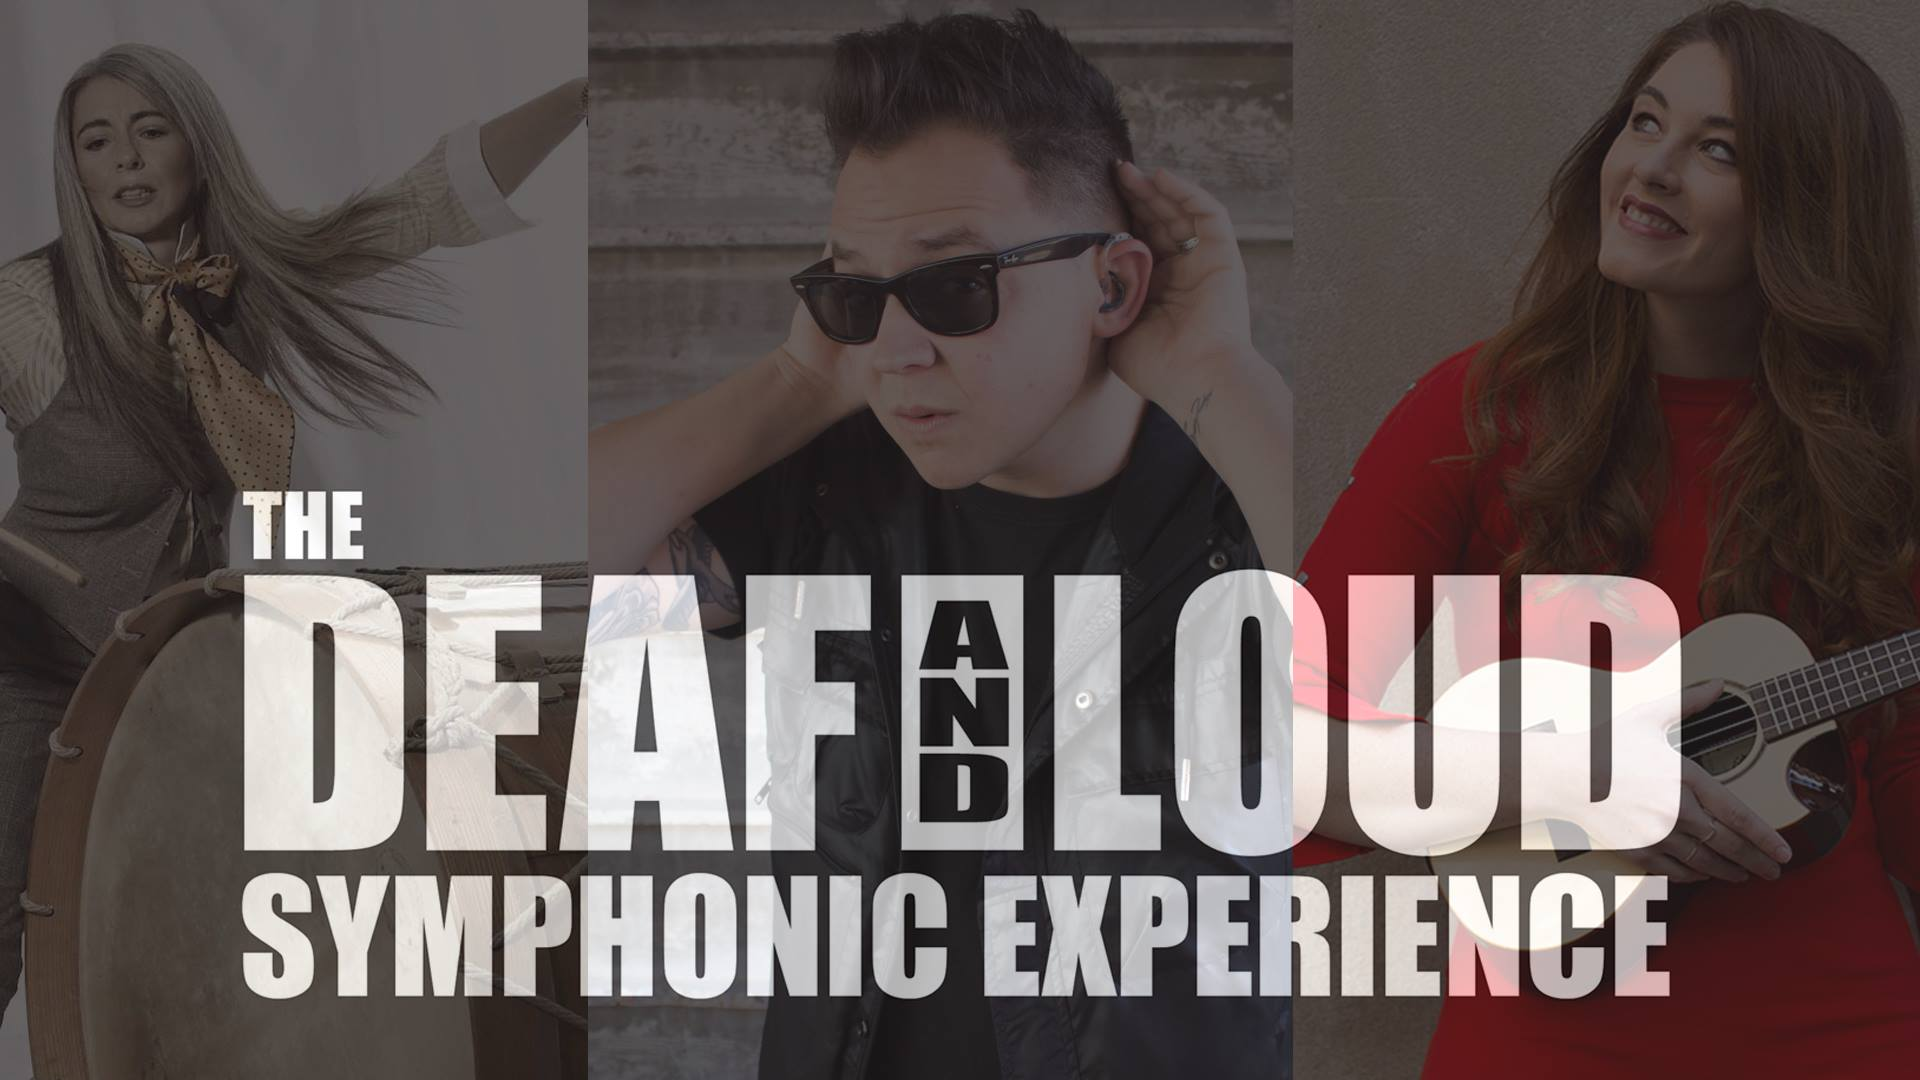 The Deaf and Loud Symphonic Experience